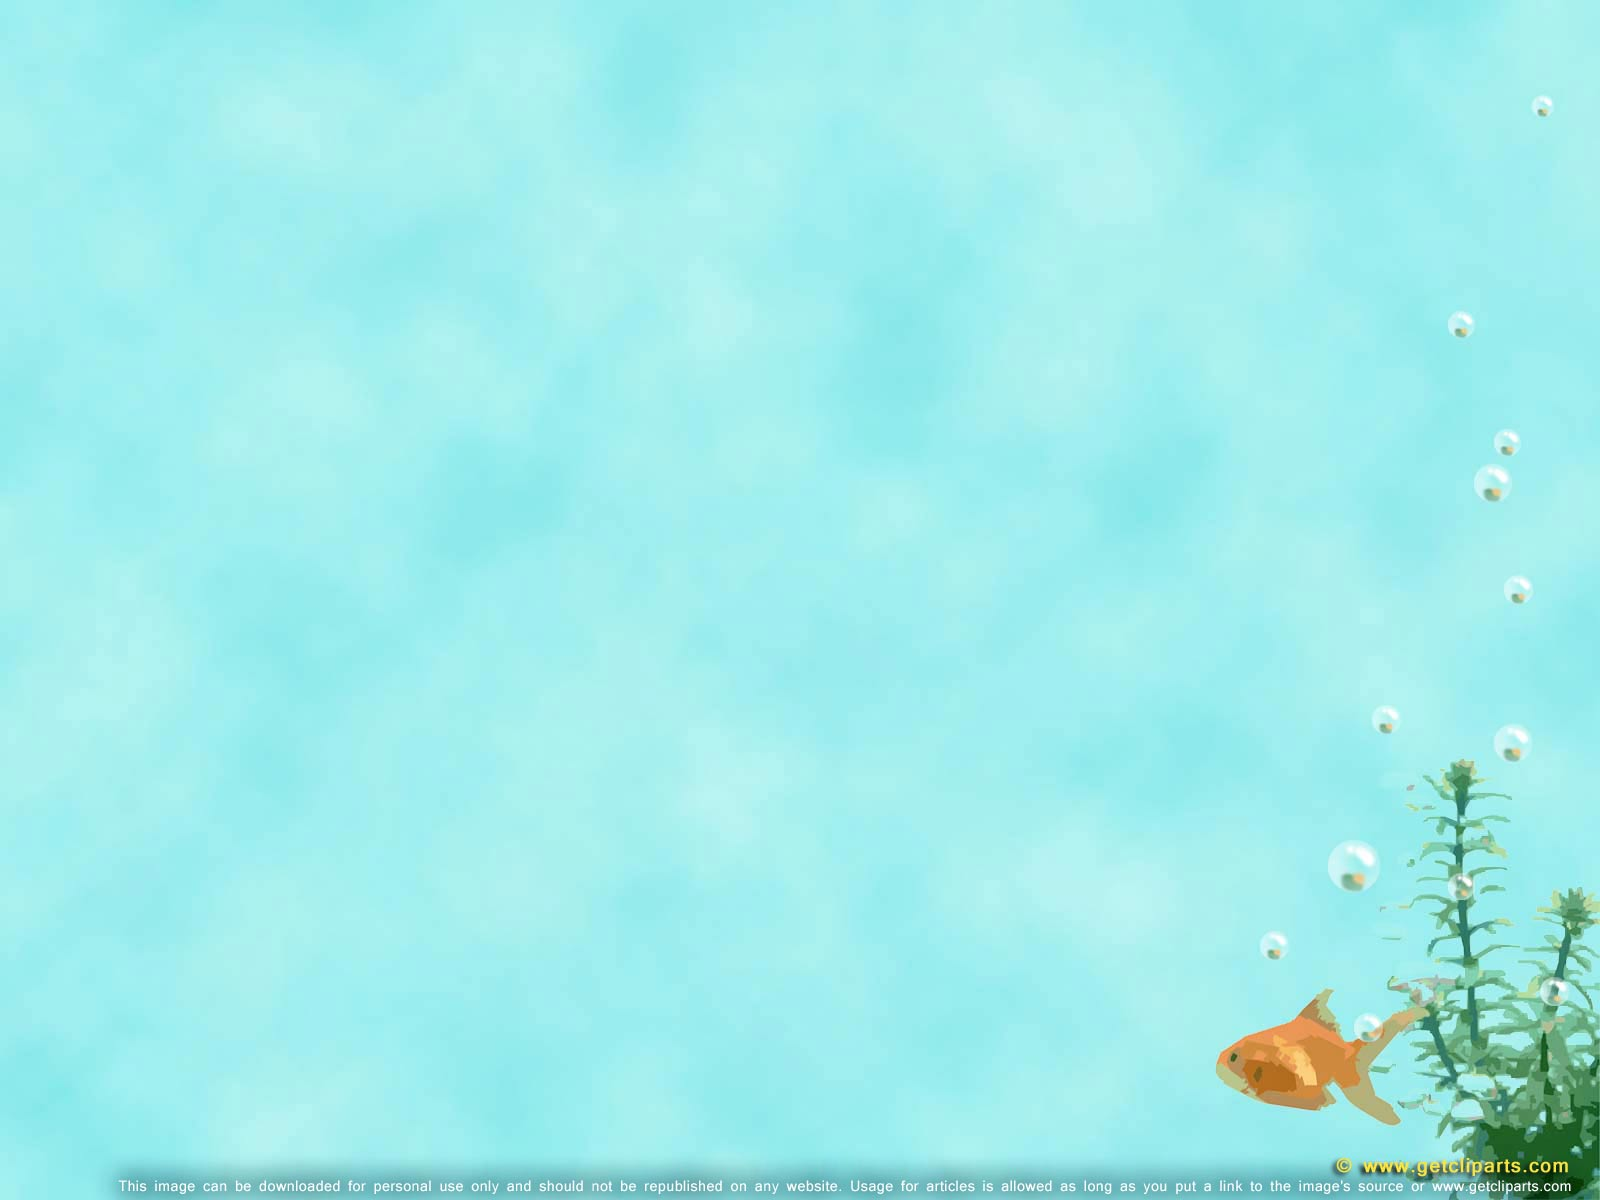 The Sea clipart powerpoint Download these Designs Images picture